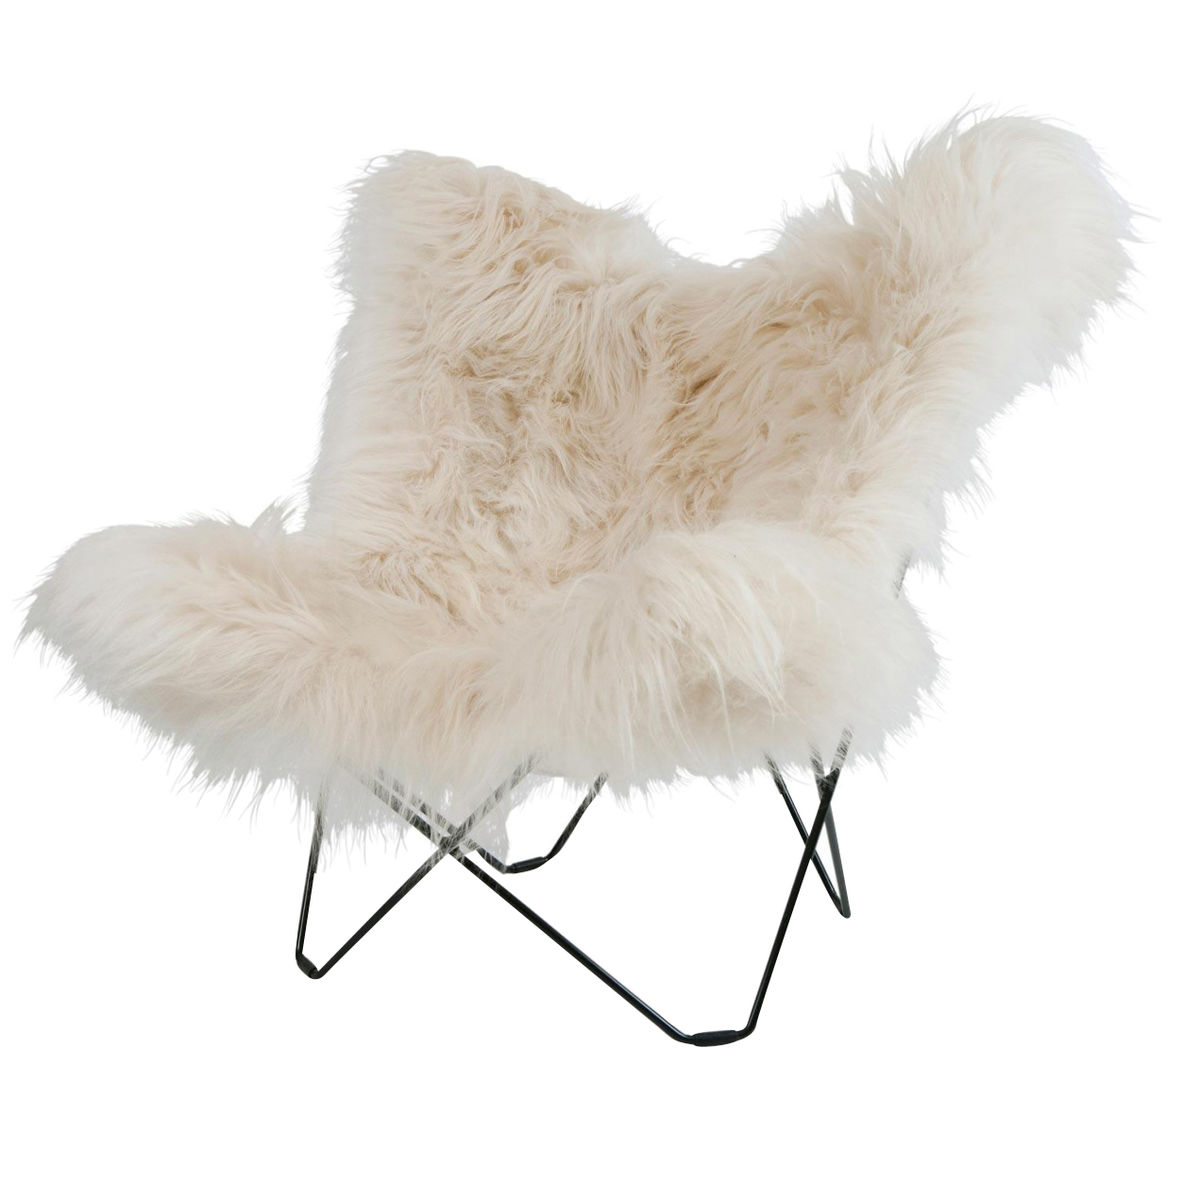 Cuero   Iceland Mariposa Butterfly Chair   White/icelandic ...